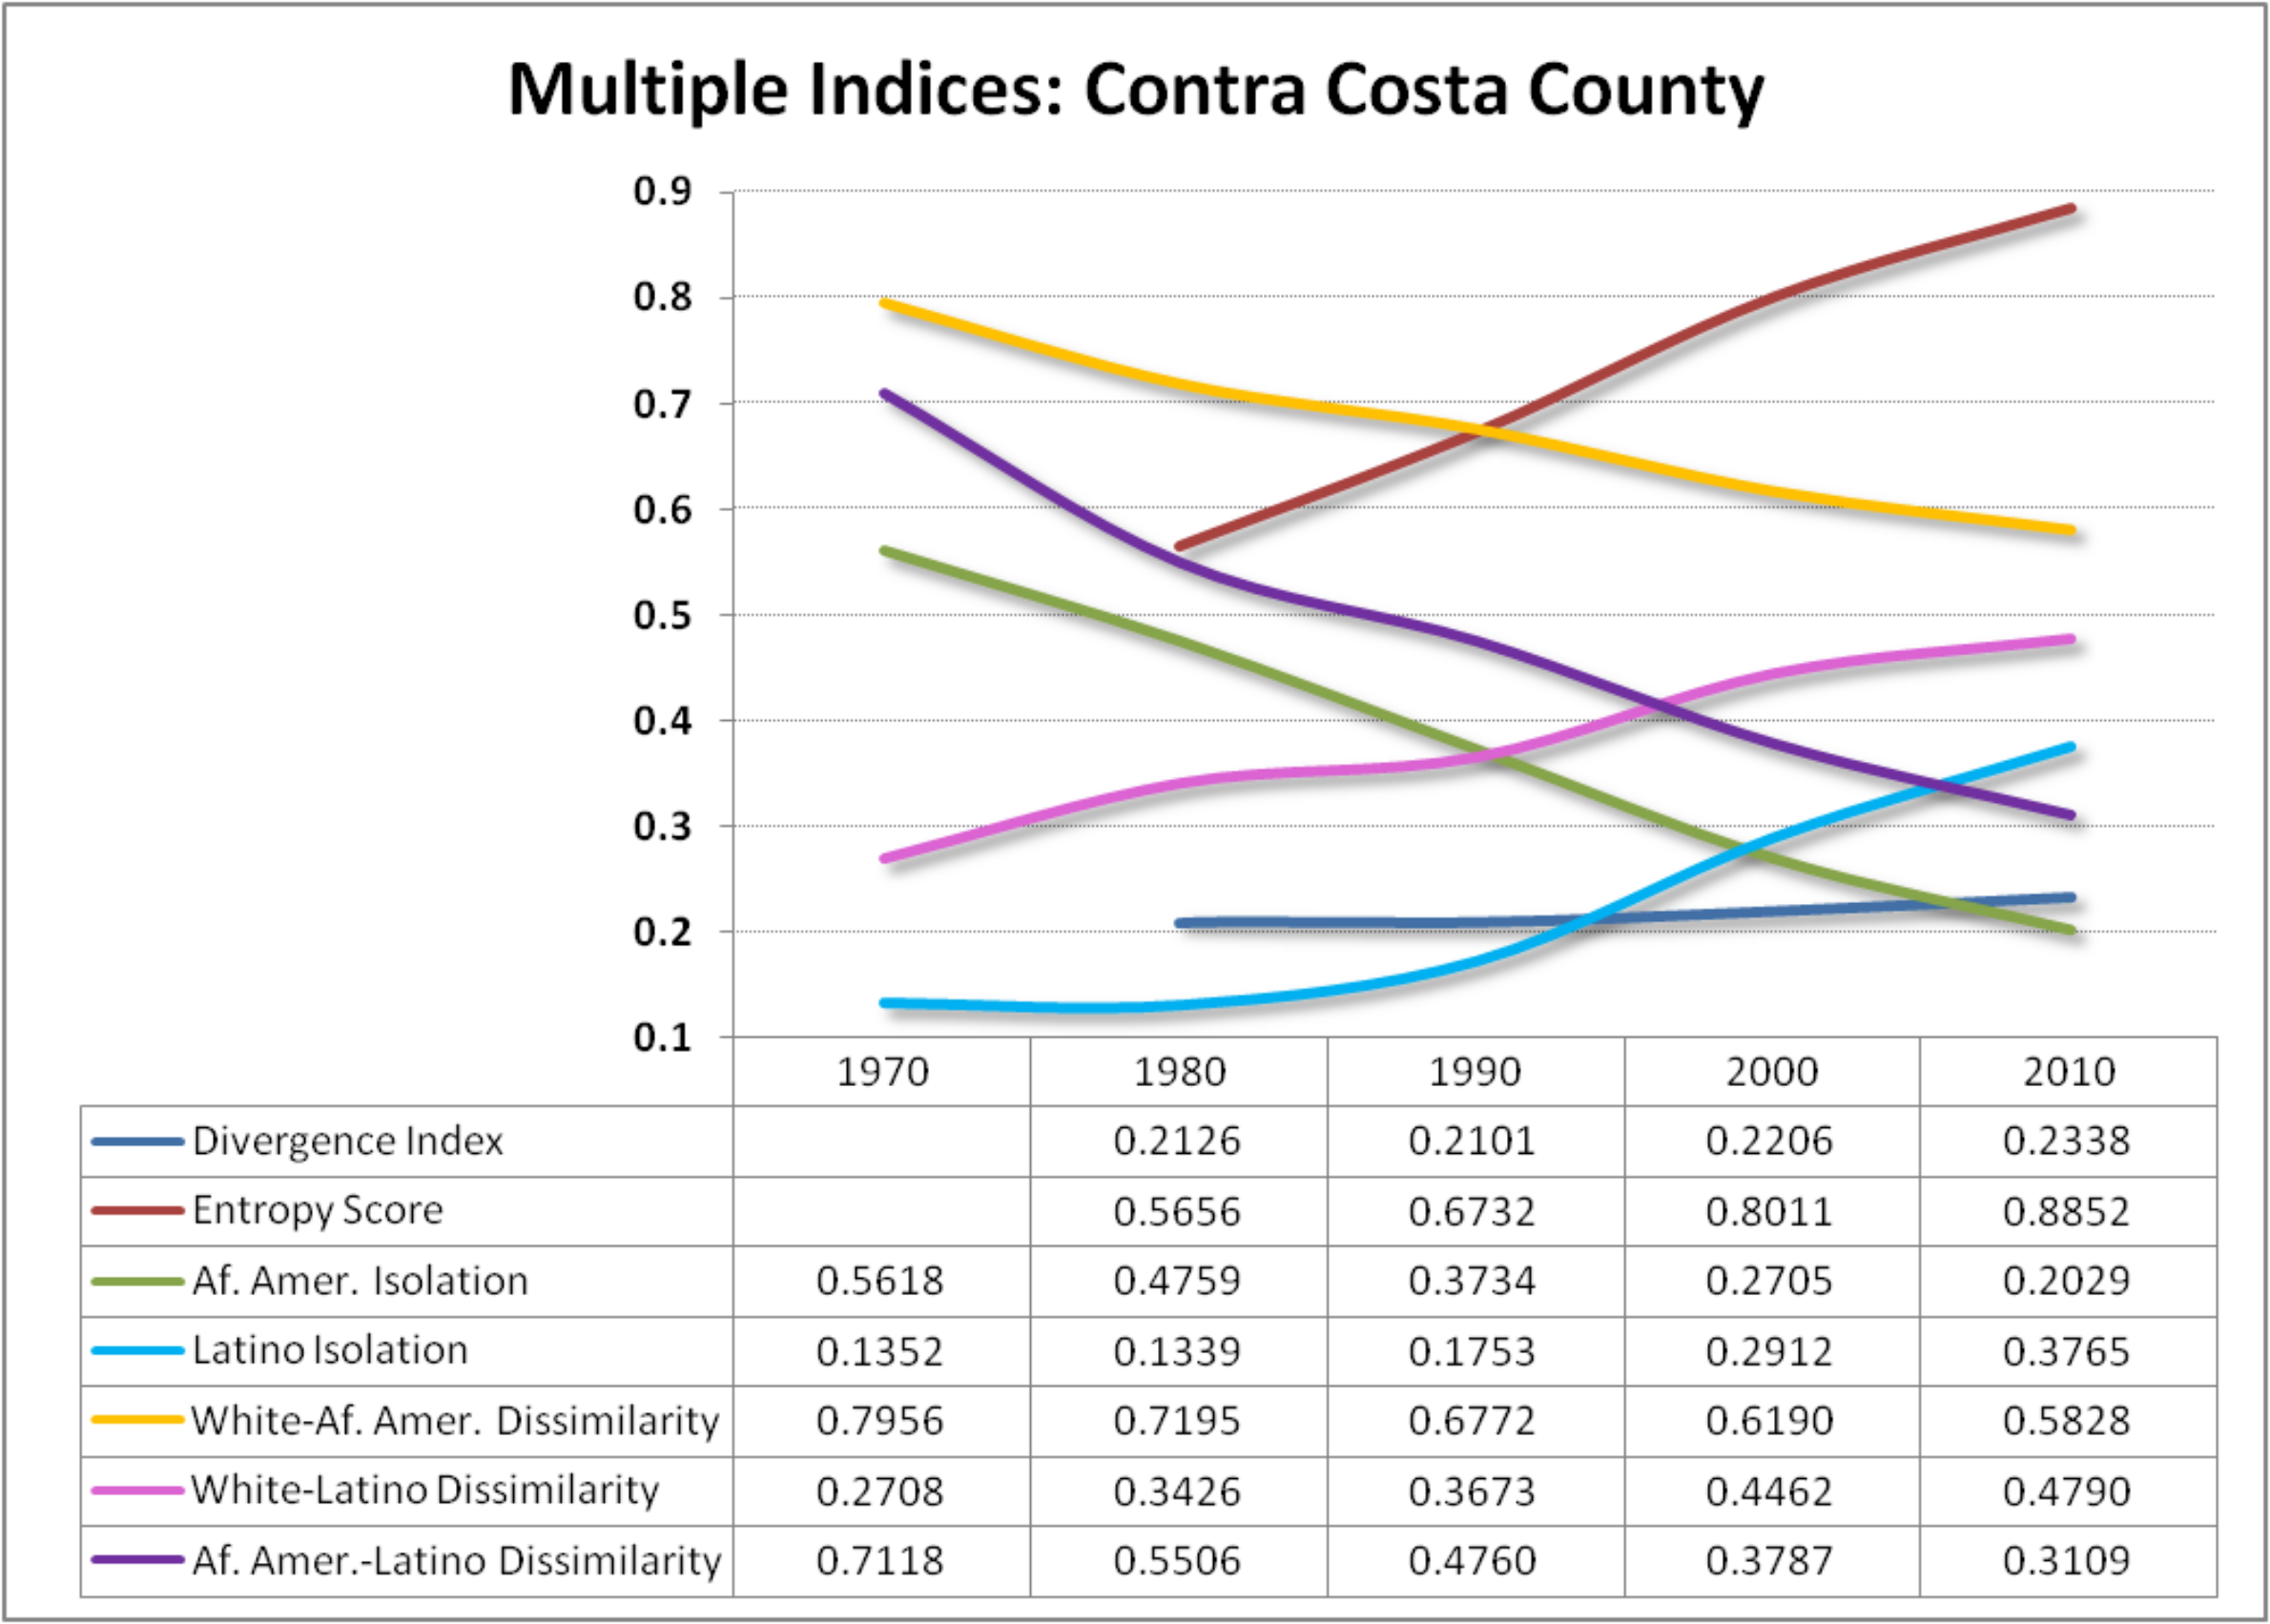 Contra Costa chart shows a story similar to that of Alameda: slightly increasing segregation using the Divergence Index,